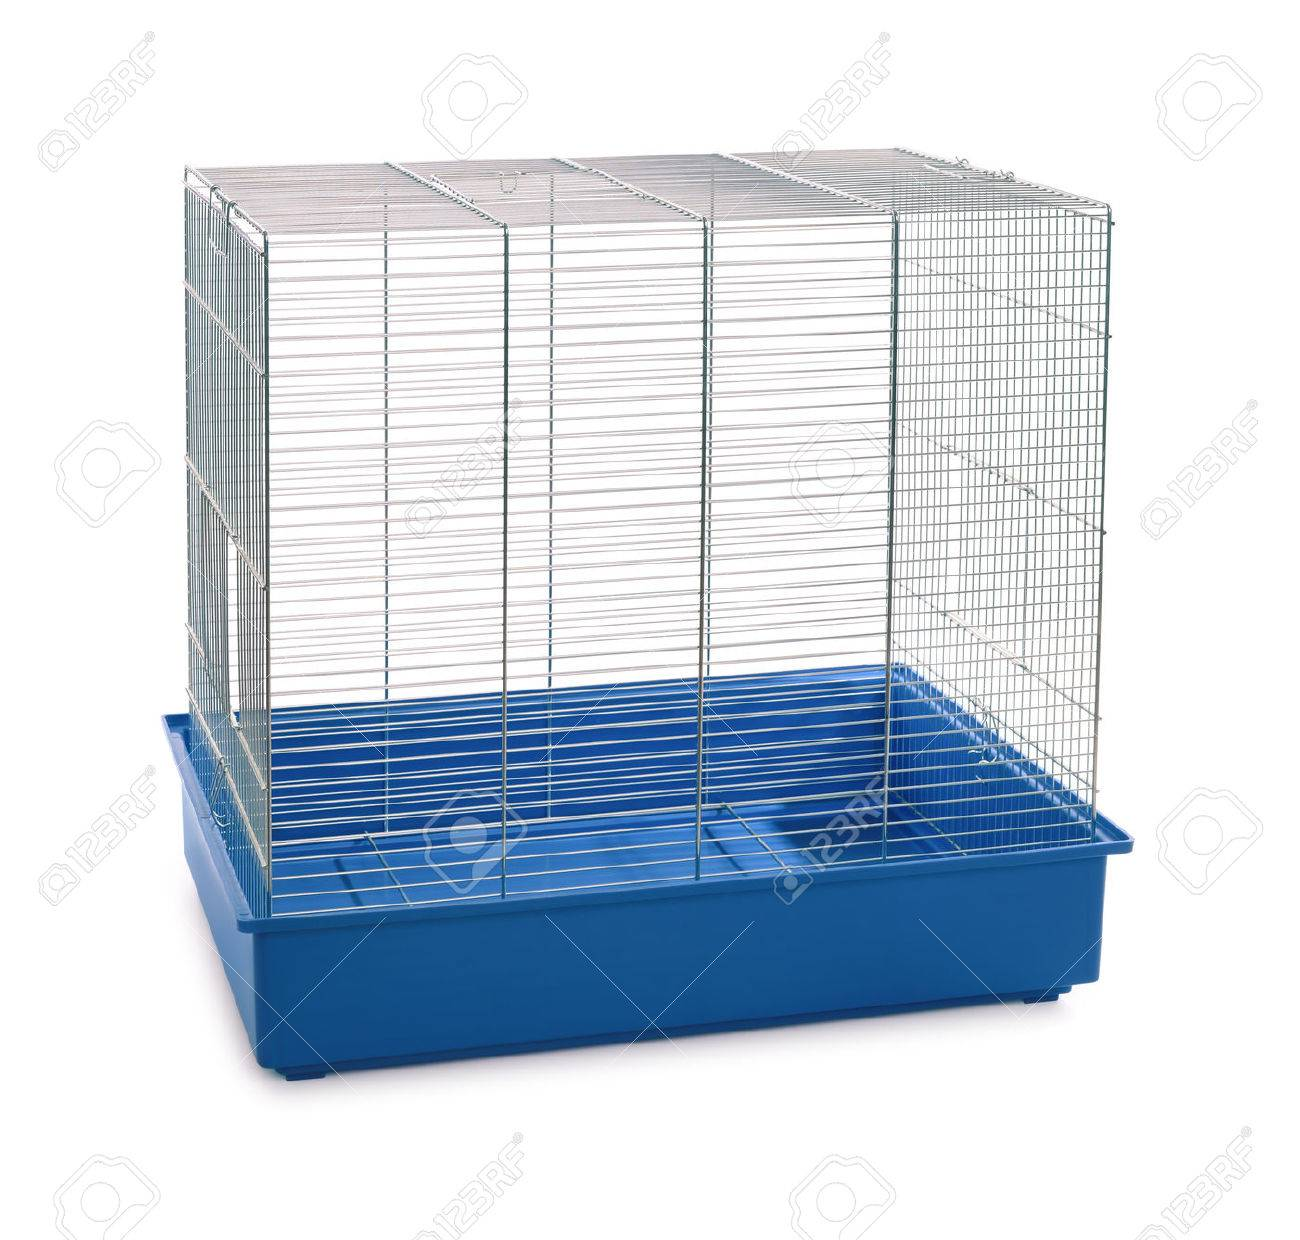 Empty animal cage isolated on white - 52794026